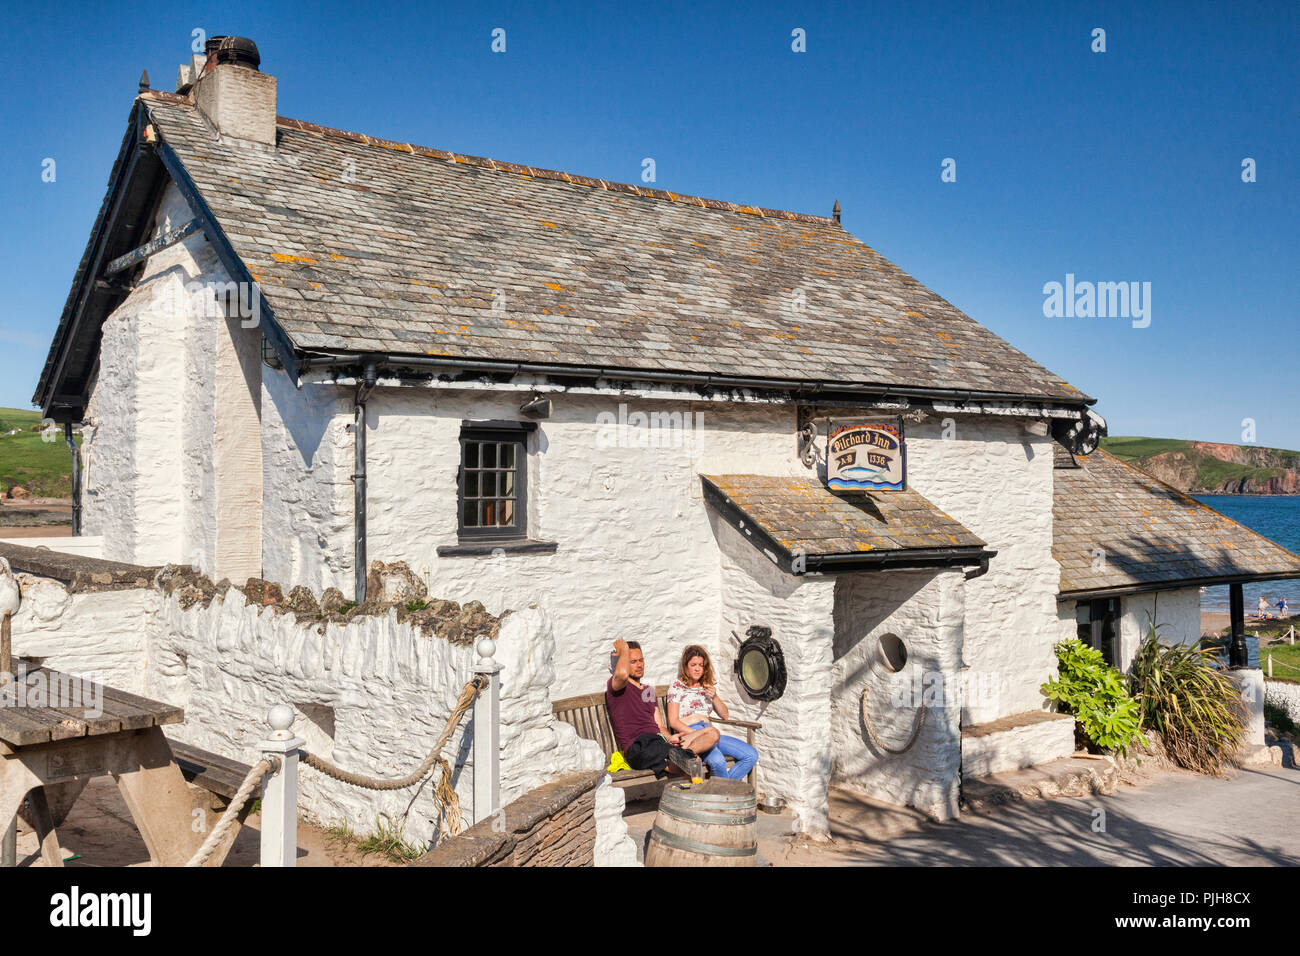 3 June 2018: Burgh Island, Bigbury on Sea, Devon UK - The Pilchard Inn, established 1336. - Stock Image